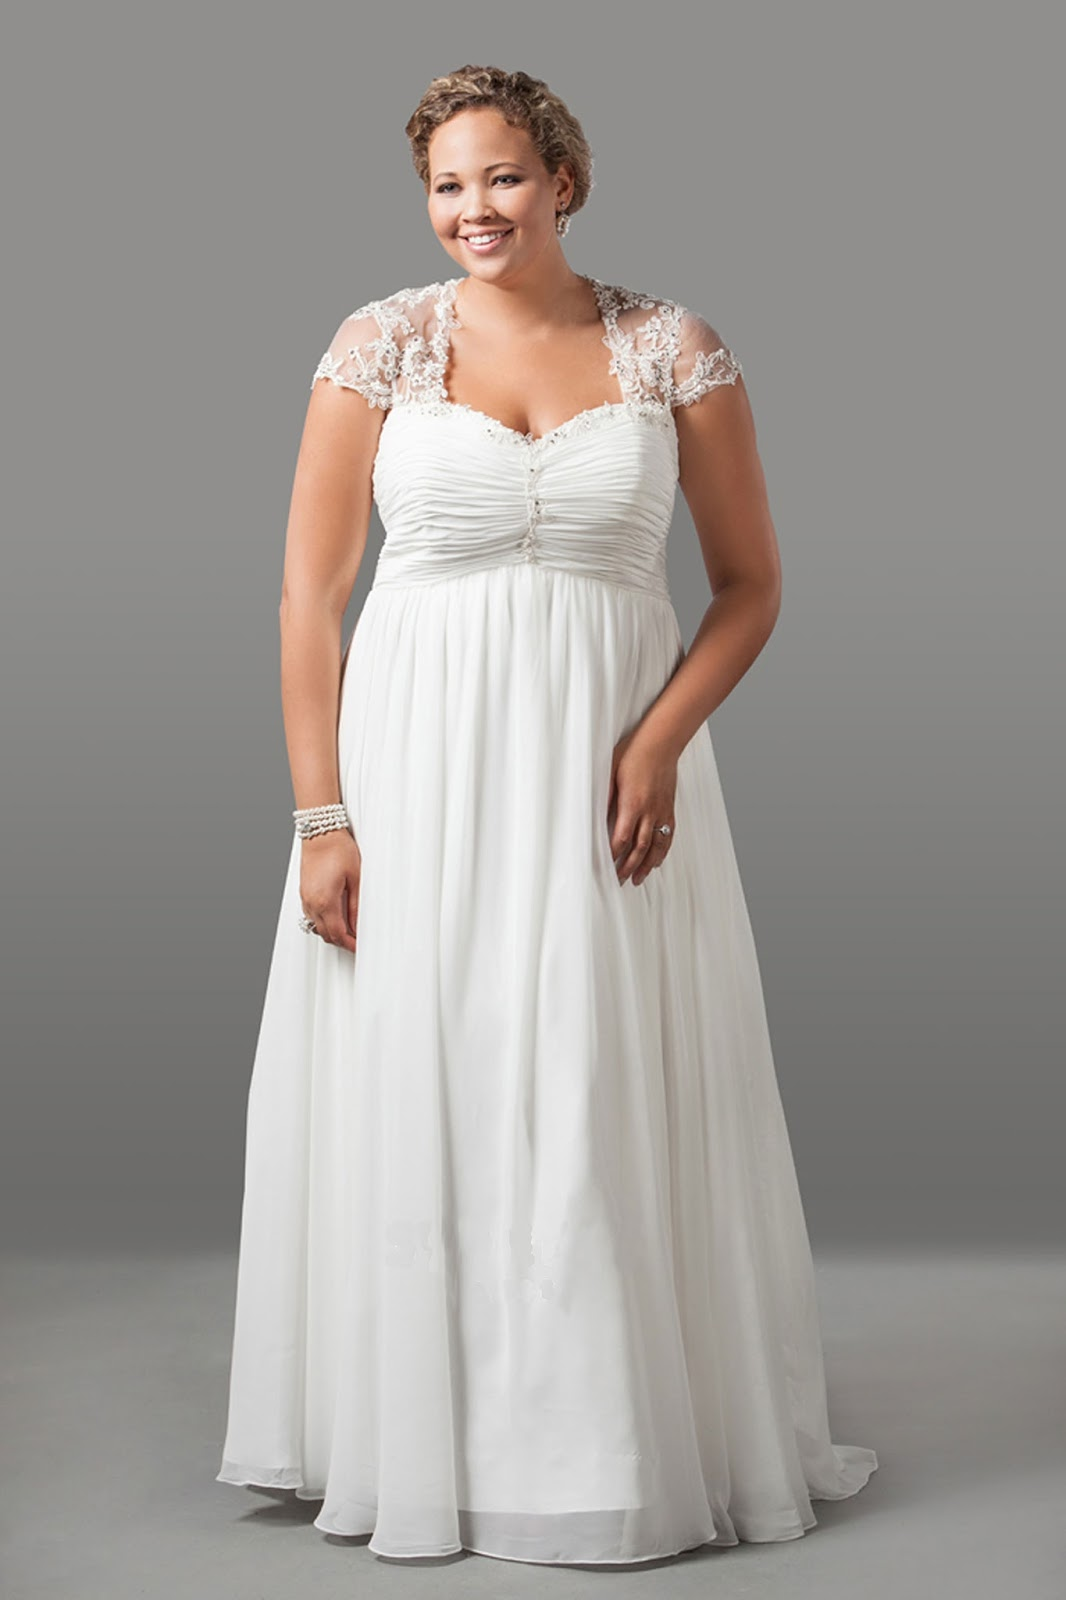 Bridesmaid Dresses Plus Size Ebay - raveitsafe